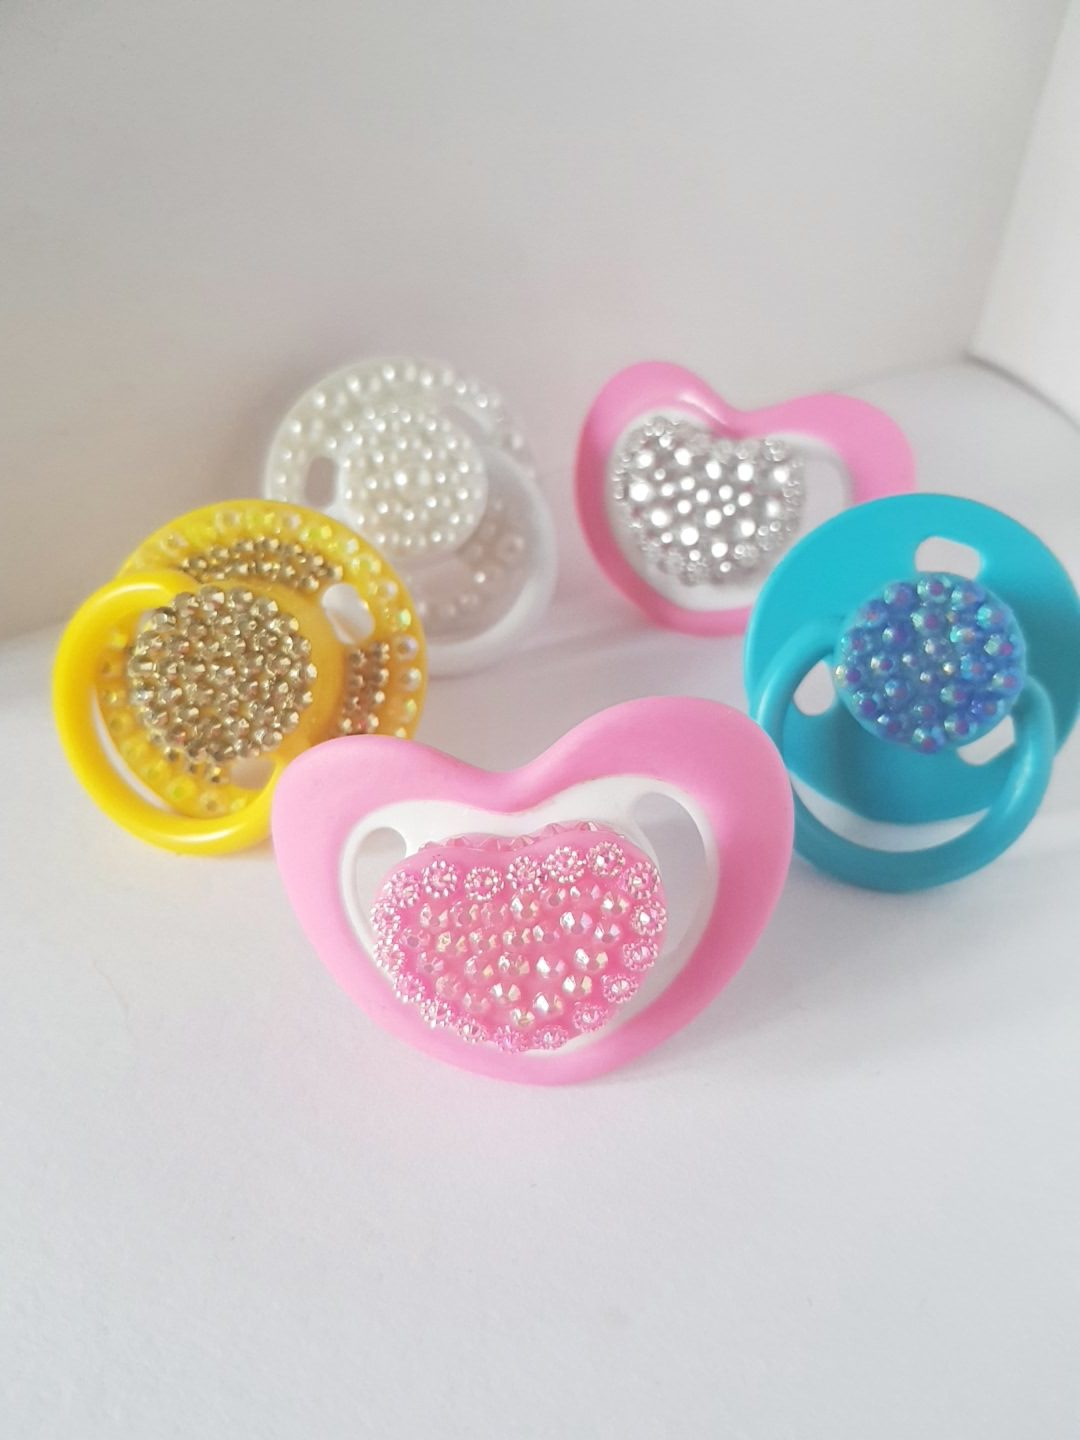 bling dummy / soother